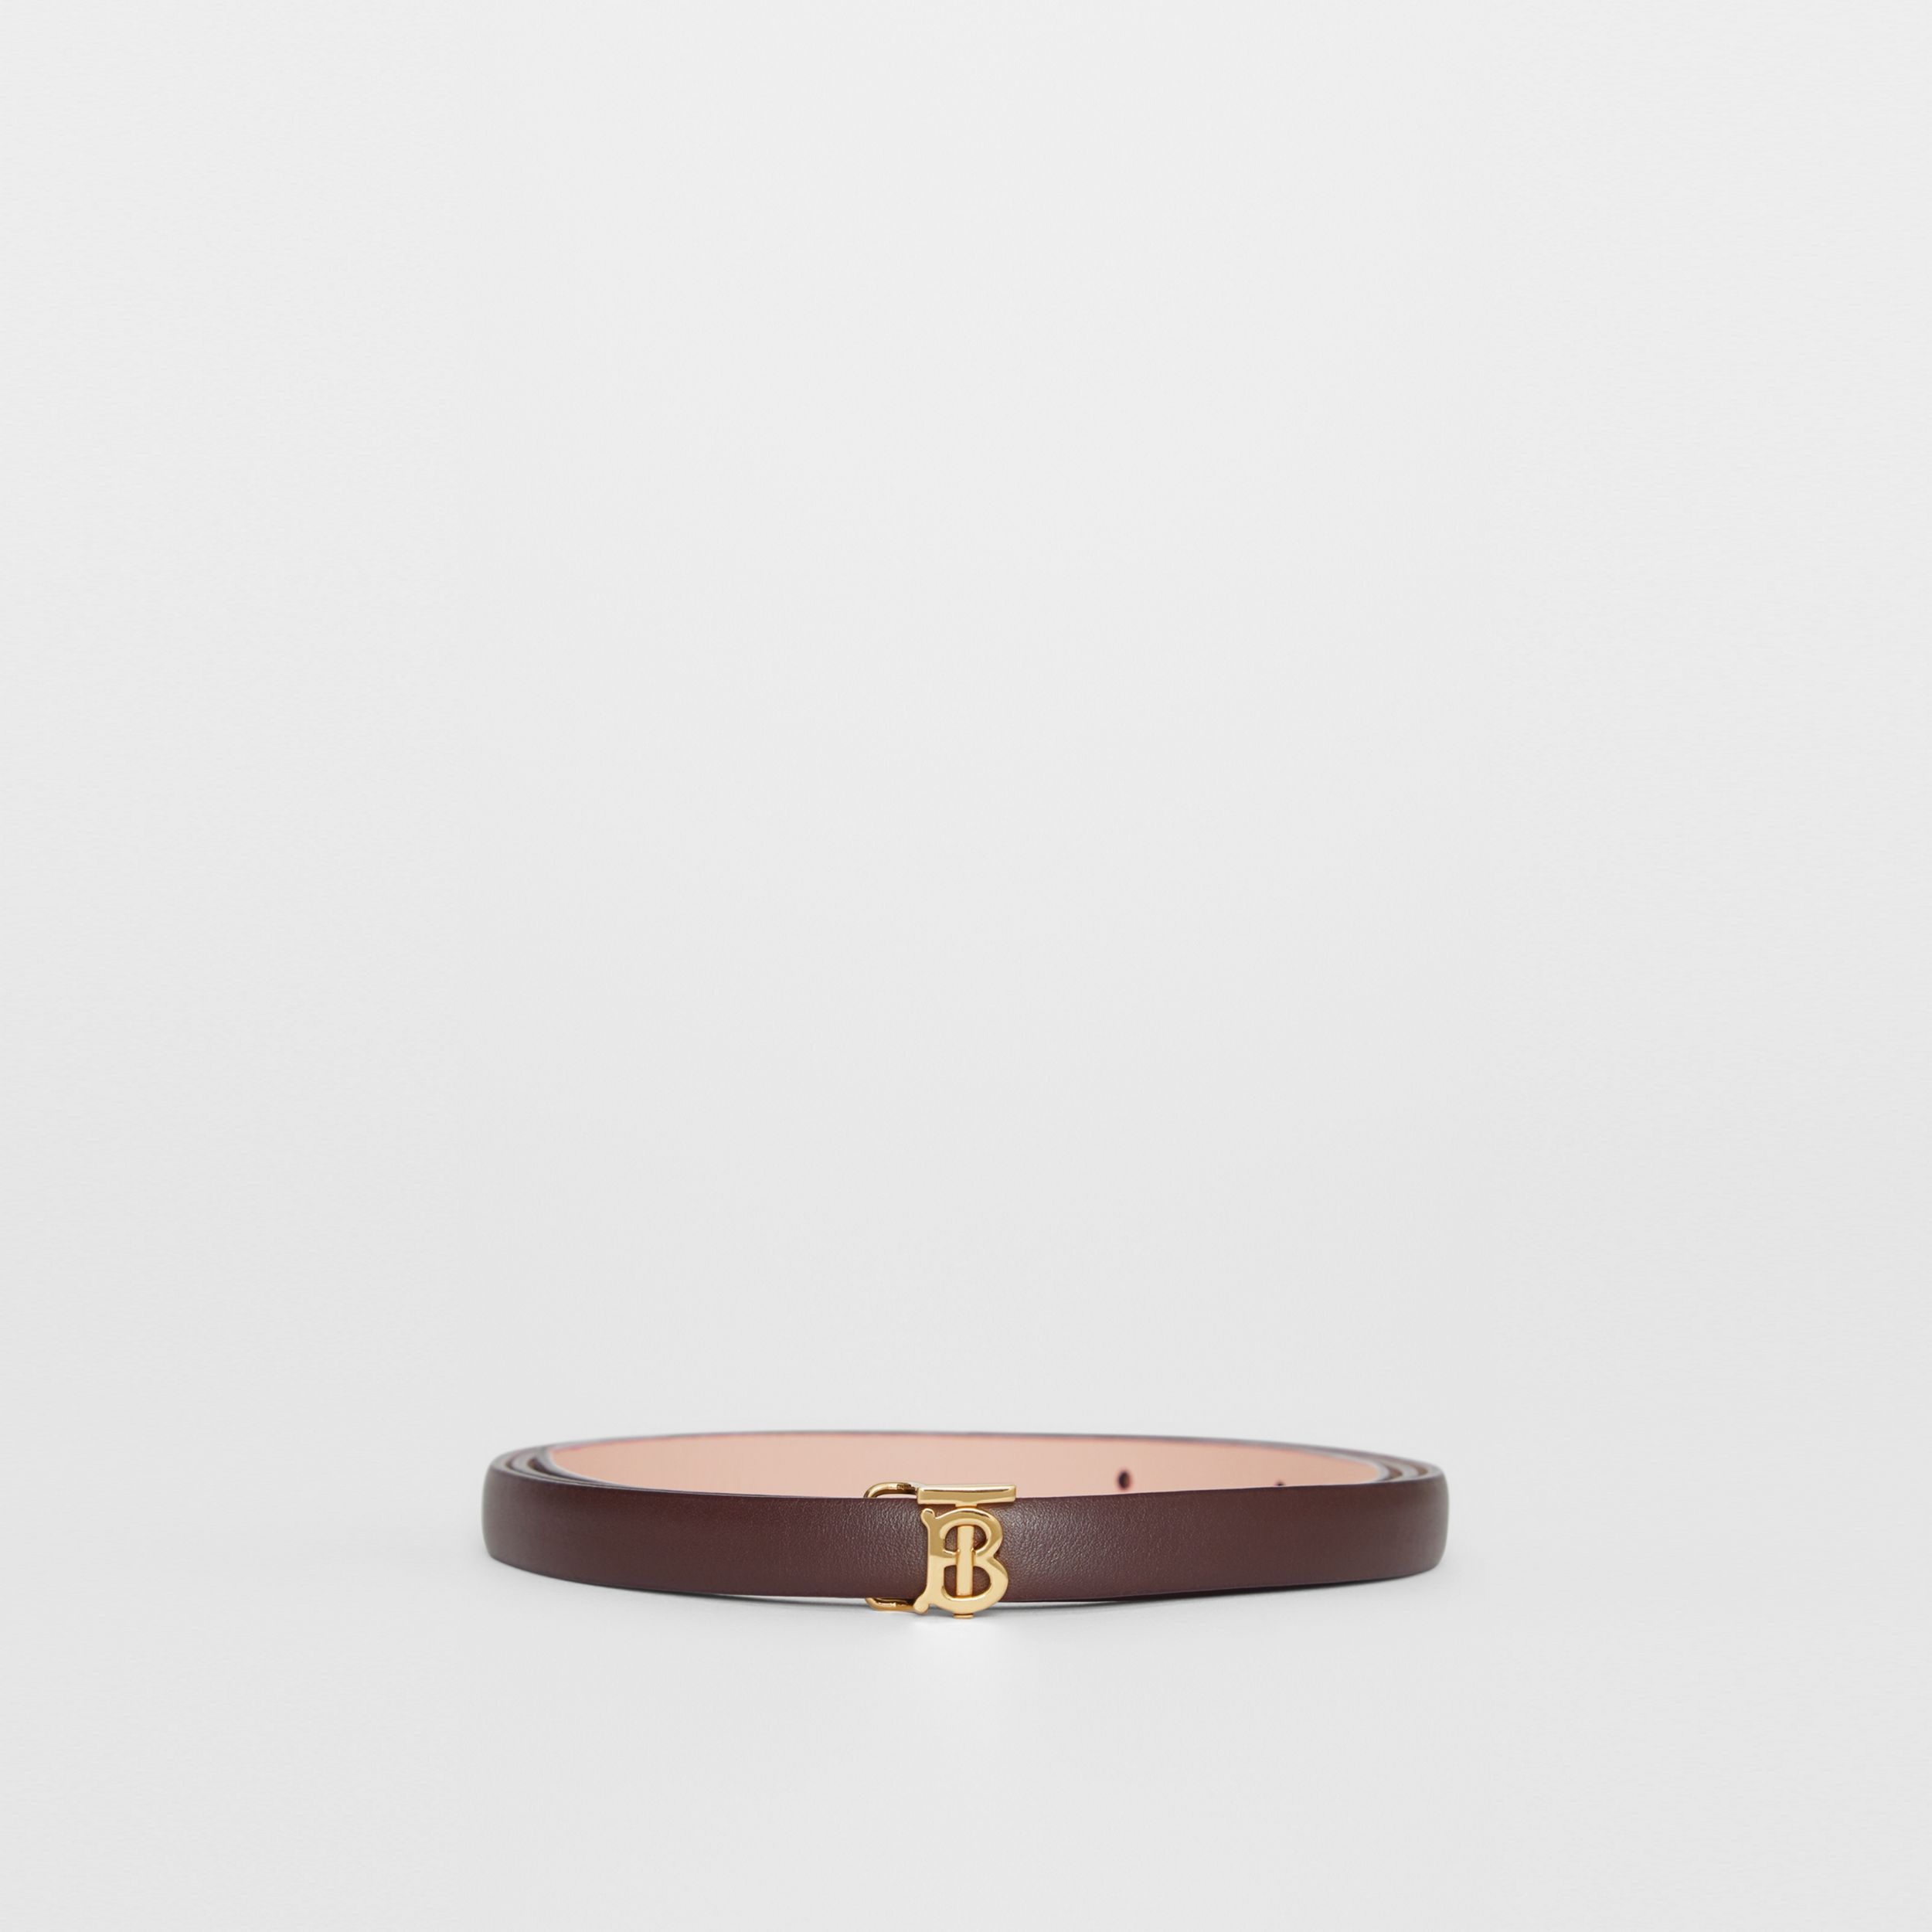 Reversible Monogram Motif Leather Wrap Belt in Oxblood/rose Beige - Women | Burberry - 4